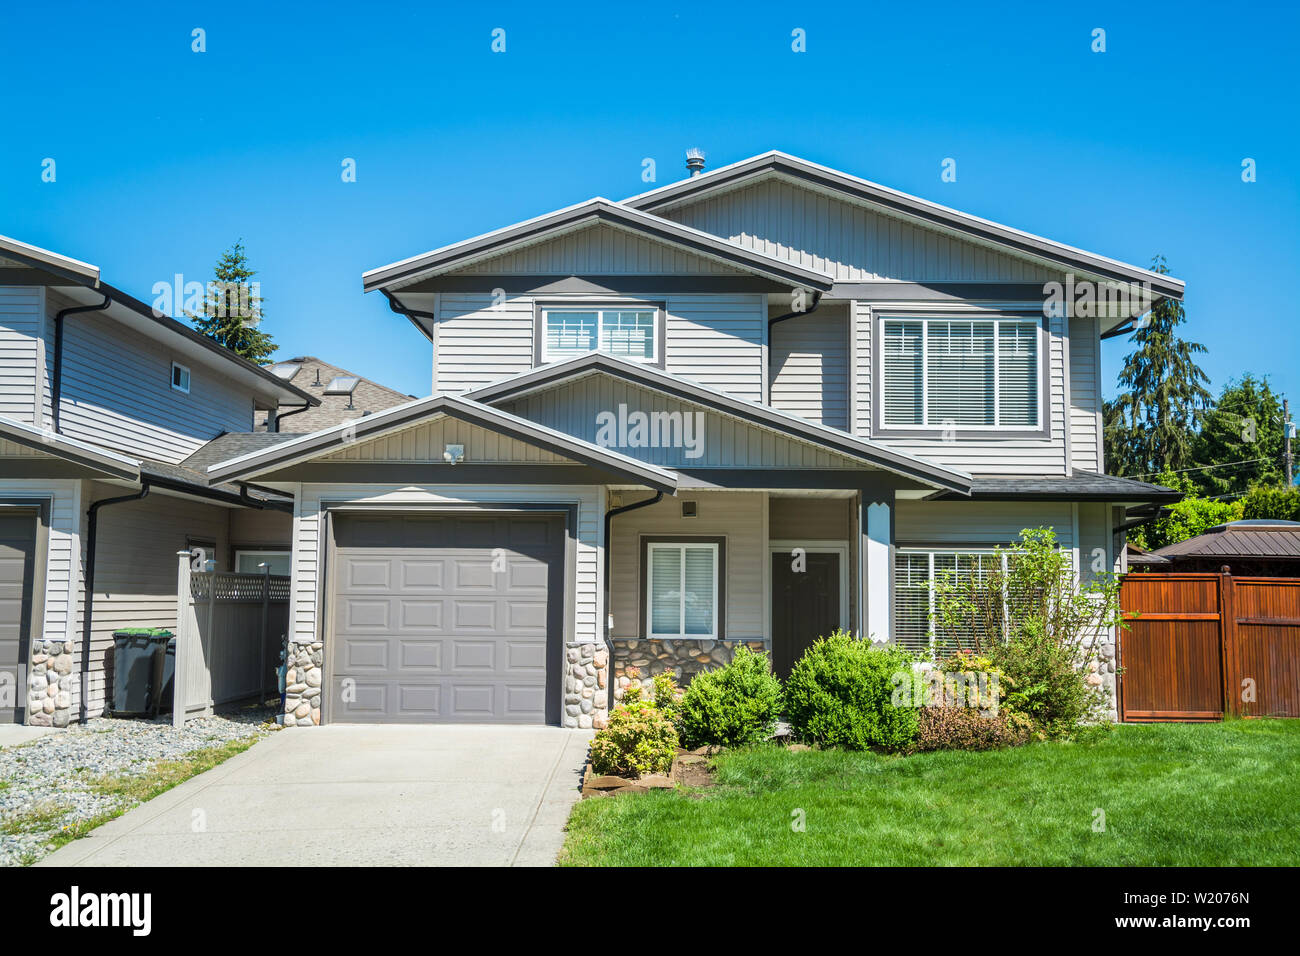 Brand new afordable family home, half duplex building. Stock Photo